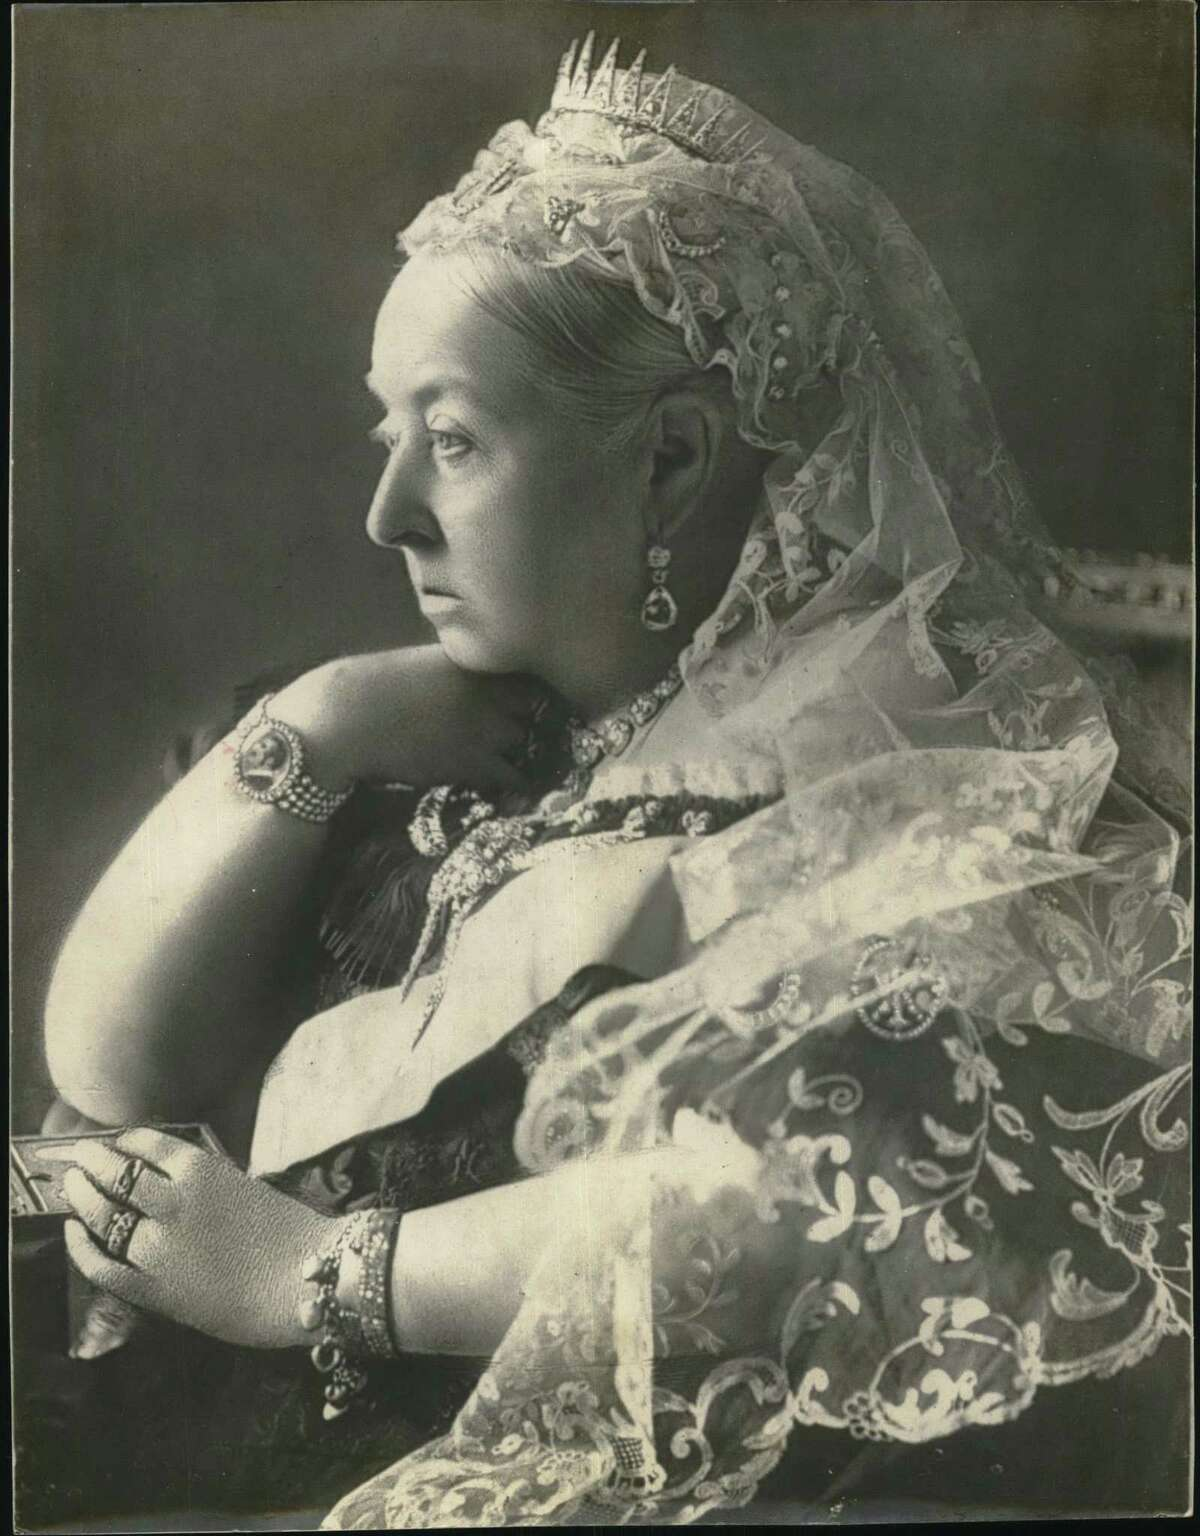 Queen Victoria's Diamond Jubilee Photograph